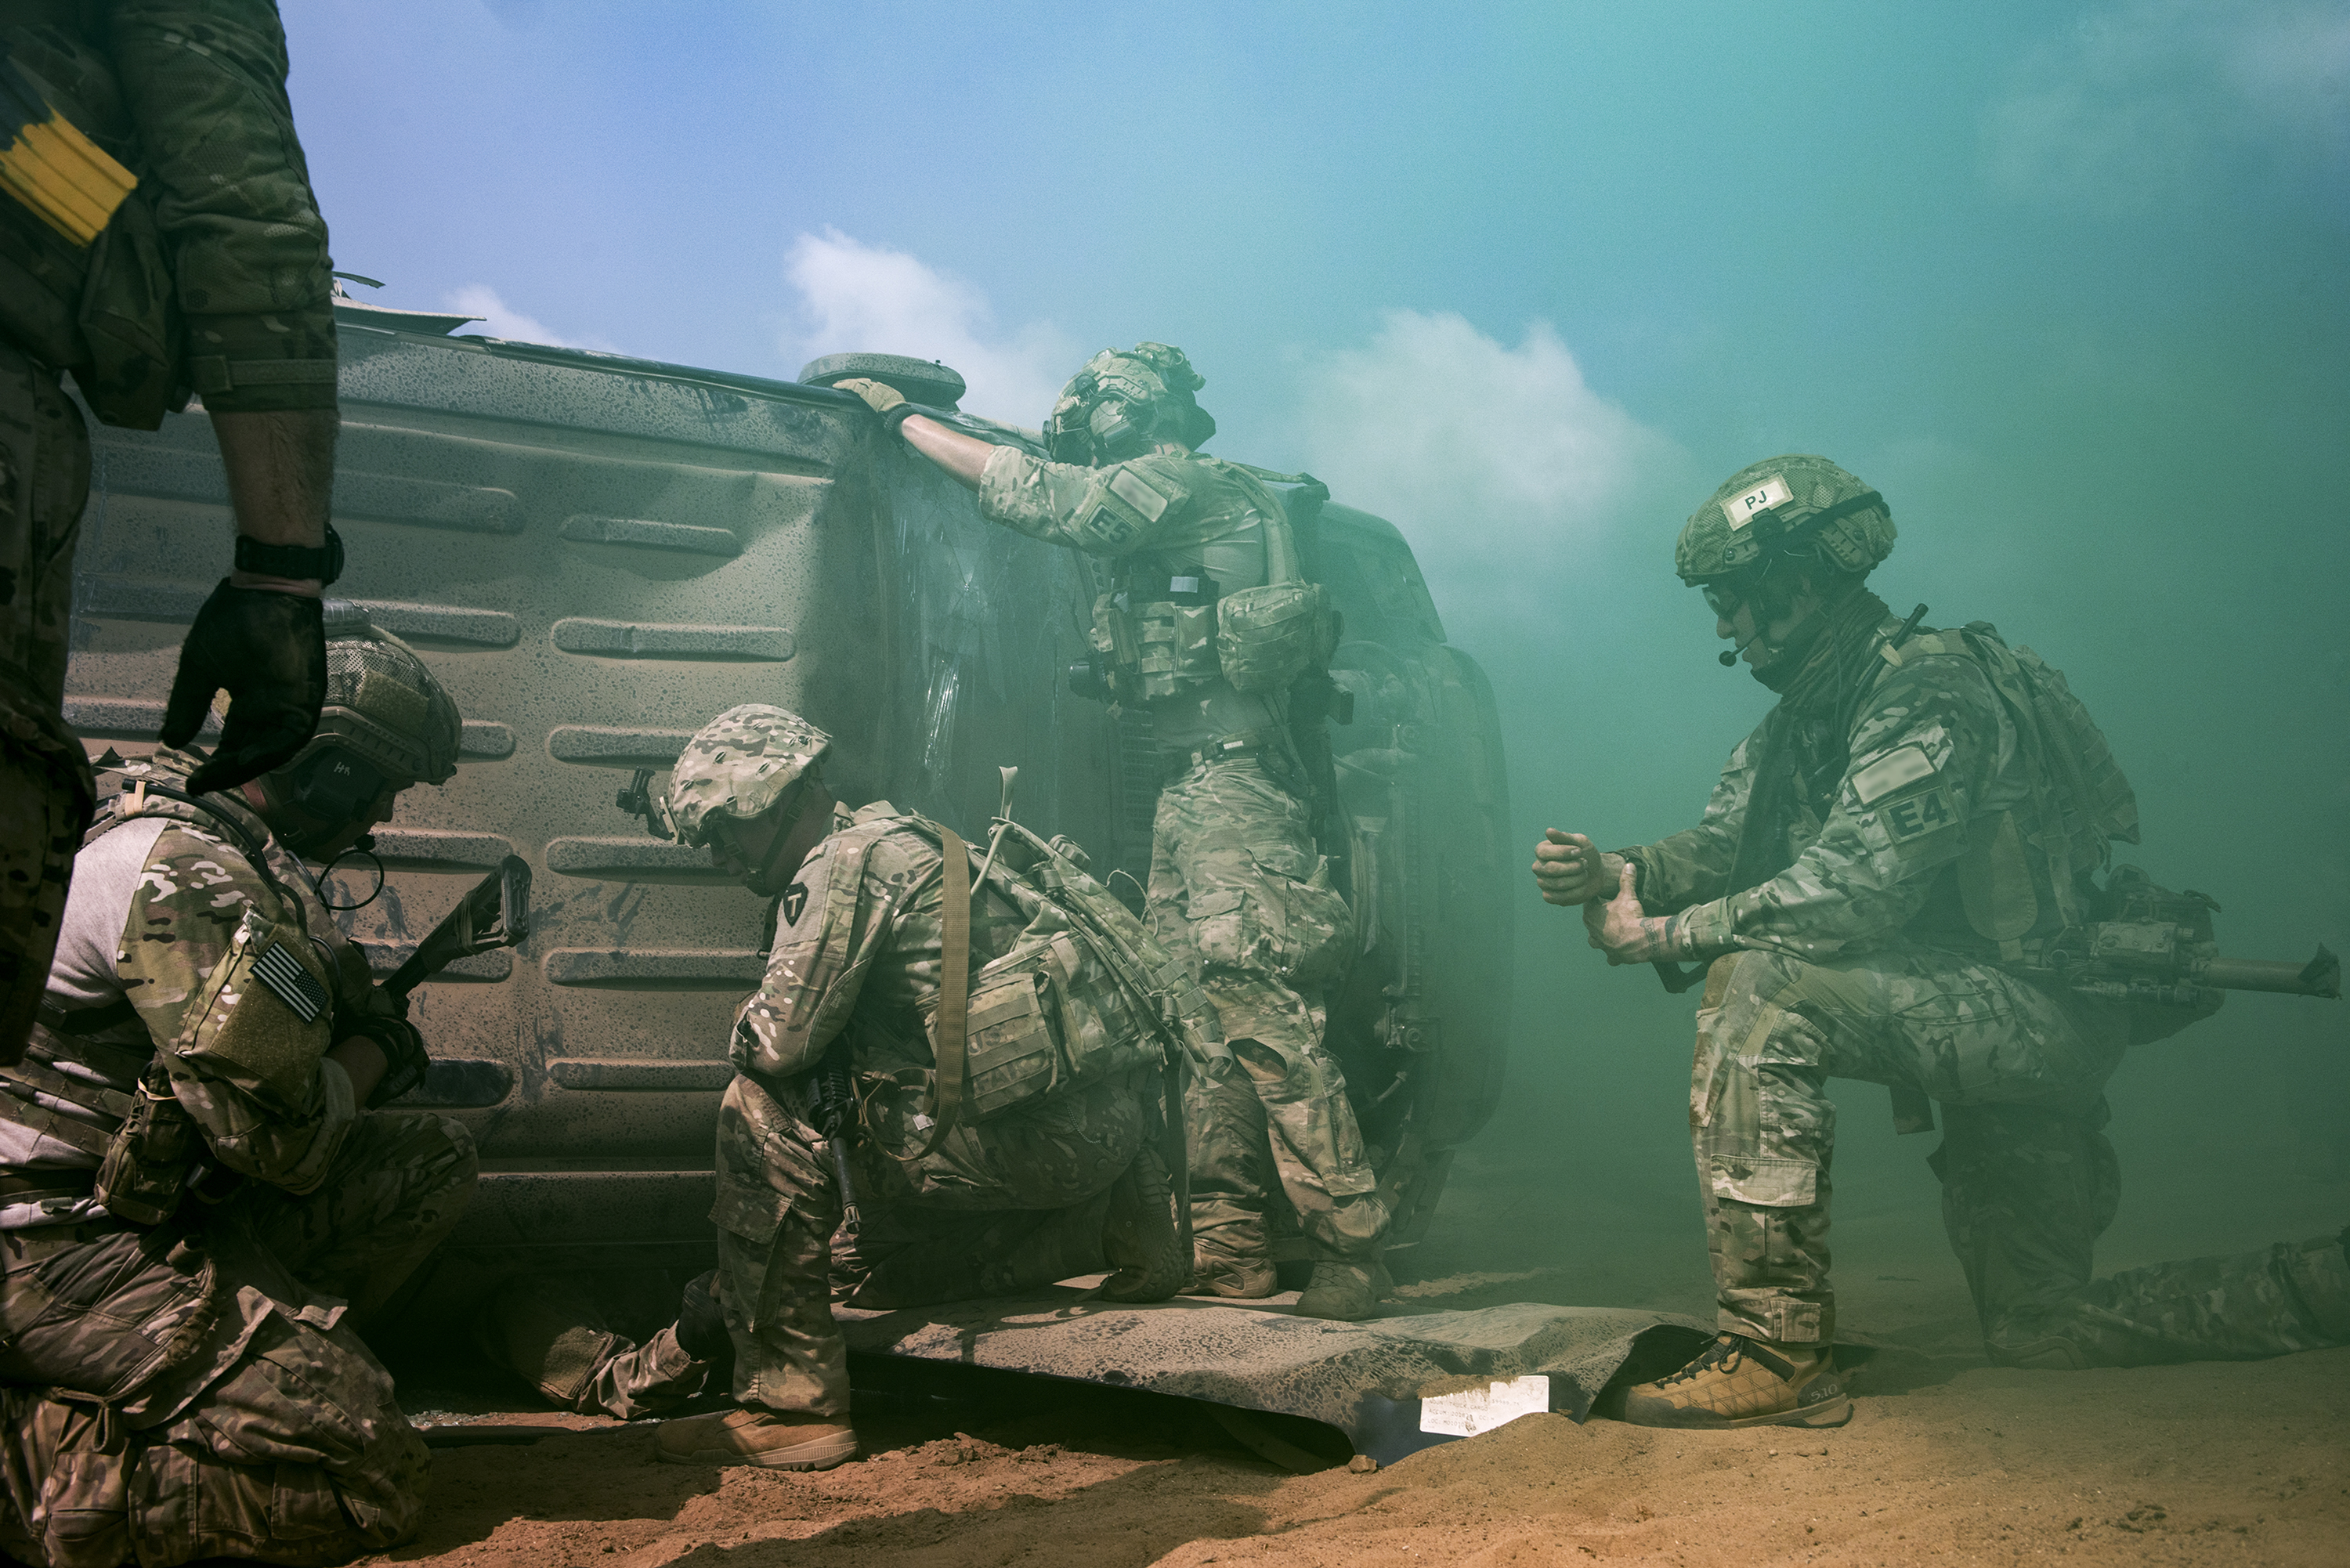 U.S. Air Force Pararescuemen from the 82nd Expeditionary Rescue Squadron and U.S. Soldiers with the Texas Army National Guard work together to rescue a simulated casualty in Djibouti City, Djibouti, April 24, 2018. As part of a joint mass casualty training exercise, service members performed various tasks in order to locate, secure and rescue simulated casualties. (U.S. Air National Guard photo by Master Sgt. Sarah Mattison) (Portions of this image were obscured for security reasons)